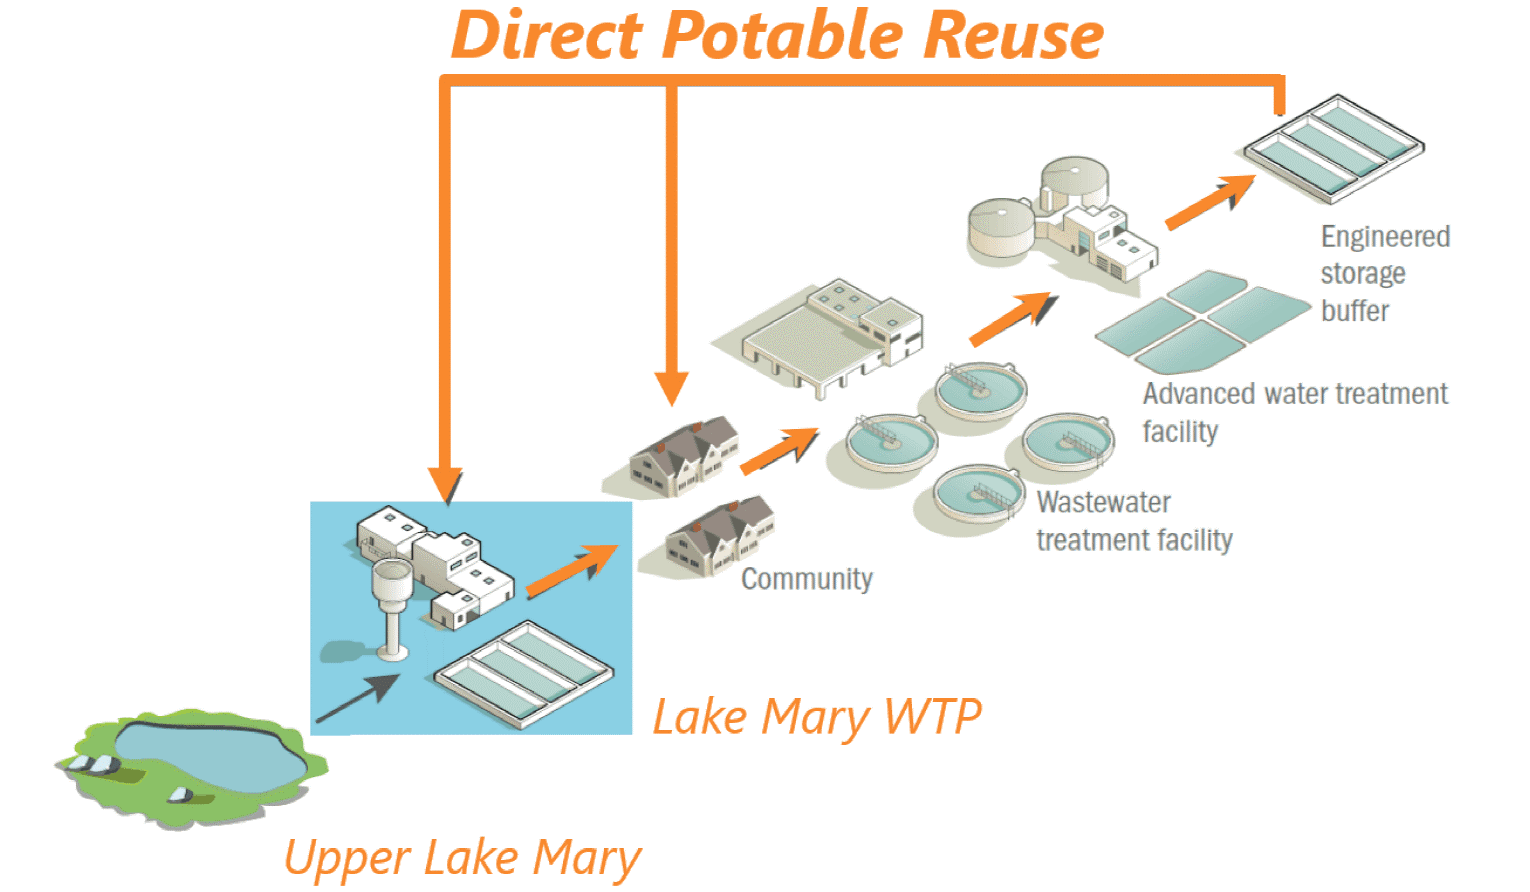 Direct Potable Reuse Graphic